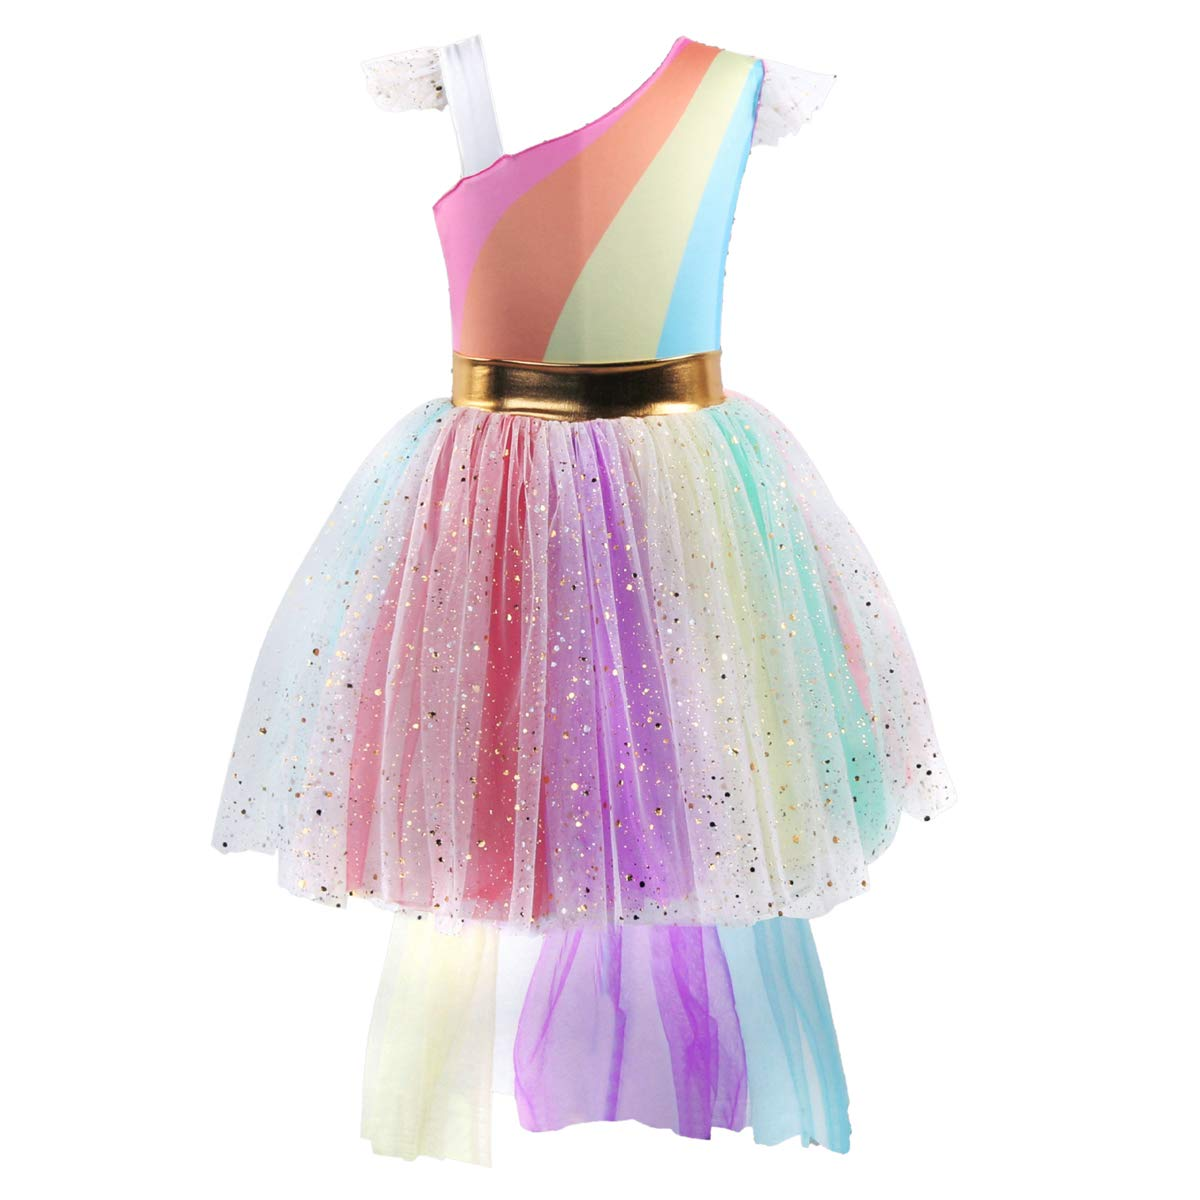 Girls Unicorn Dress up Costume Rainbow Sequins Tulle Ruffle Skirt Birthday Dresses Tutu Outfit Kids Princess Dressing Gown for Halloween Fancy Party Pageant Wedding Photography Cosplay 6-7 Years